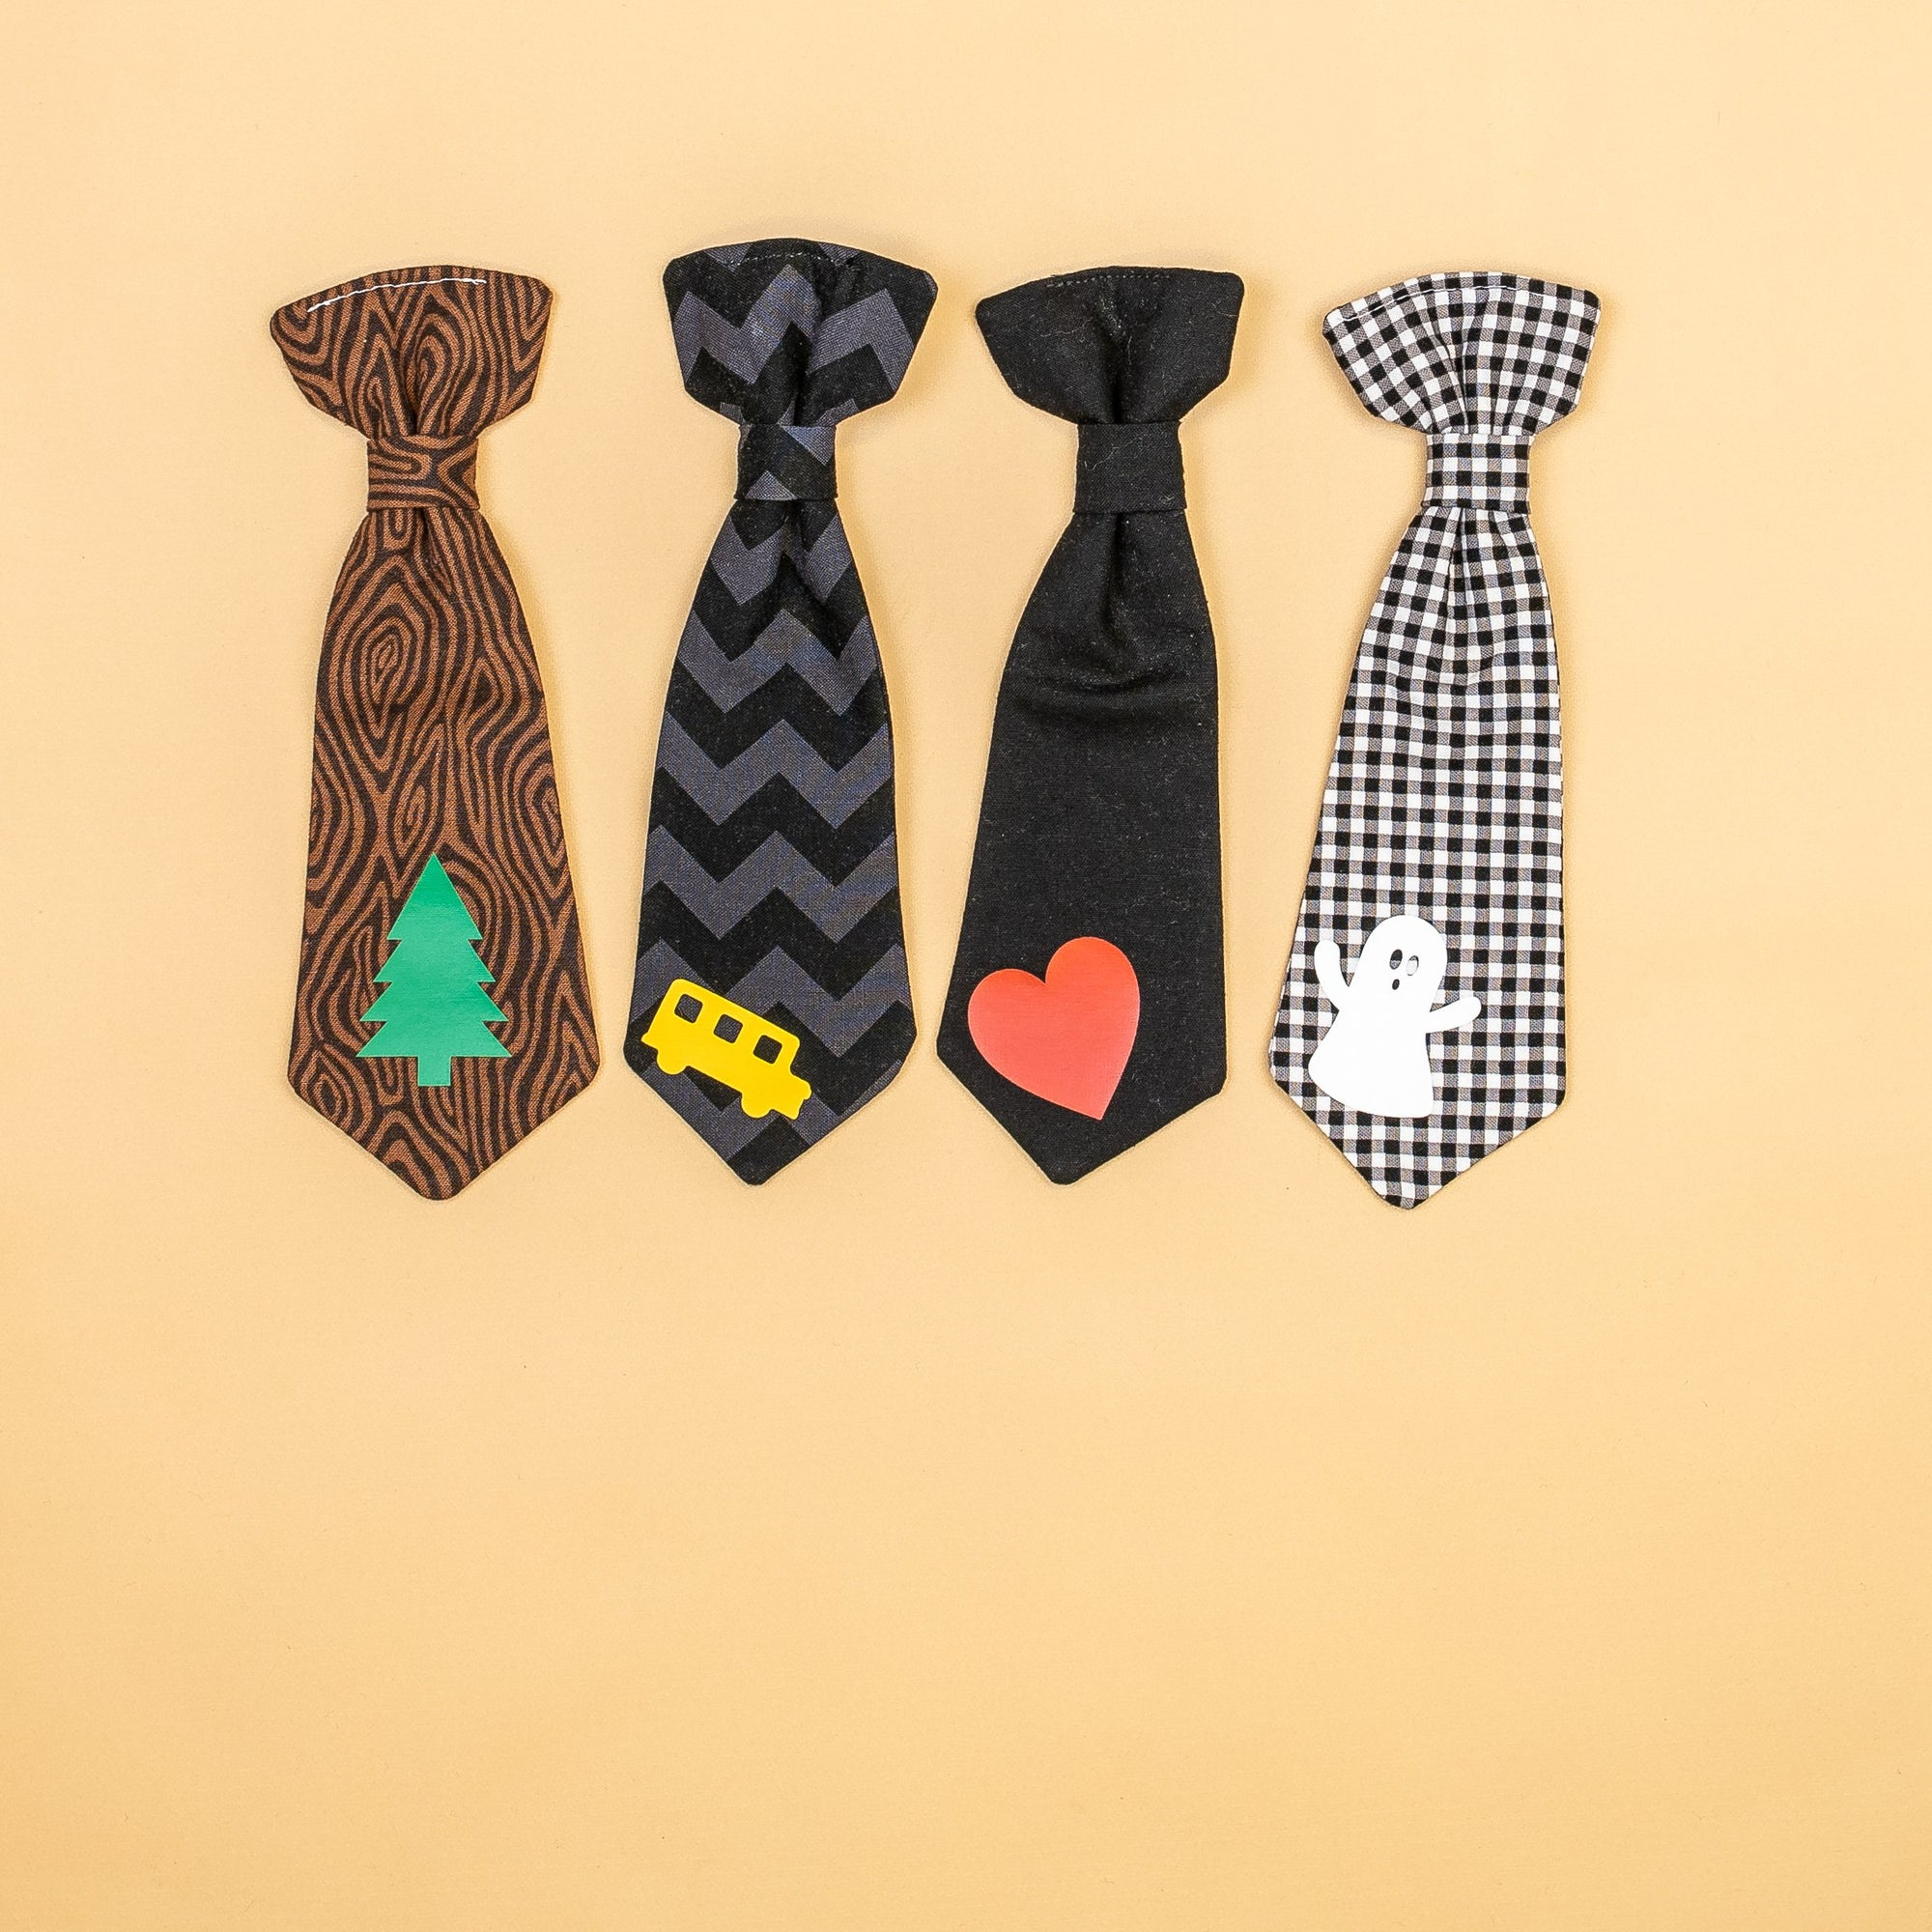 Cuddle Sleep Dream Ties Designed Snap-On Necktie